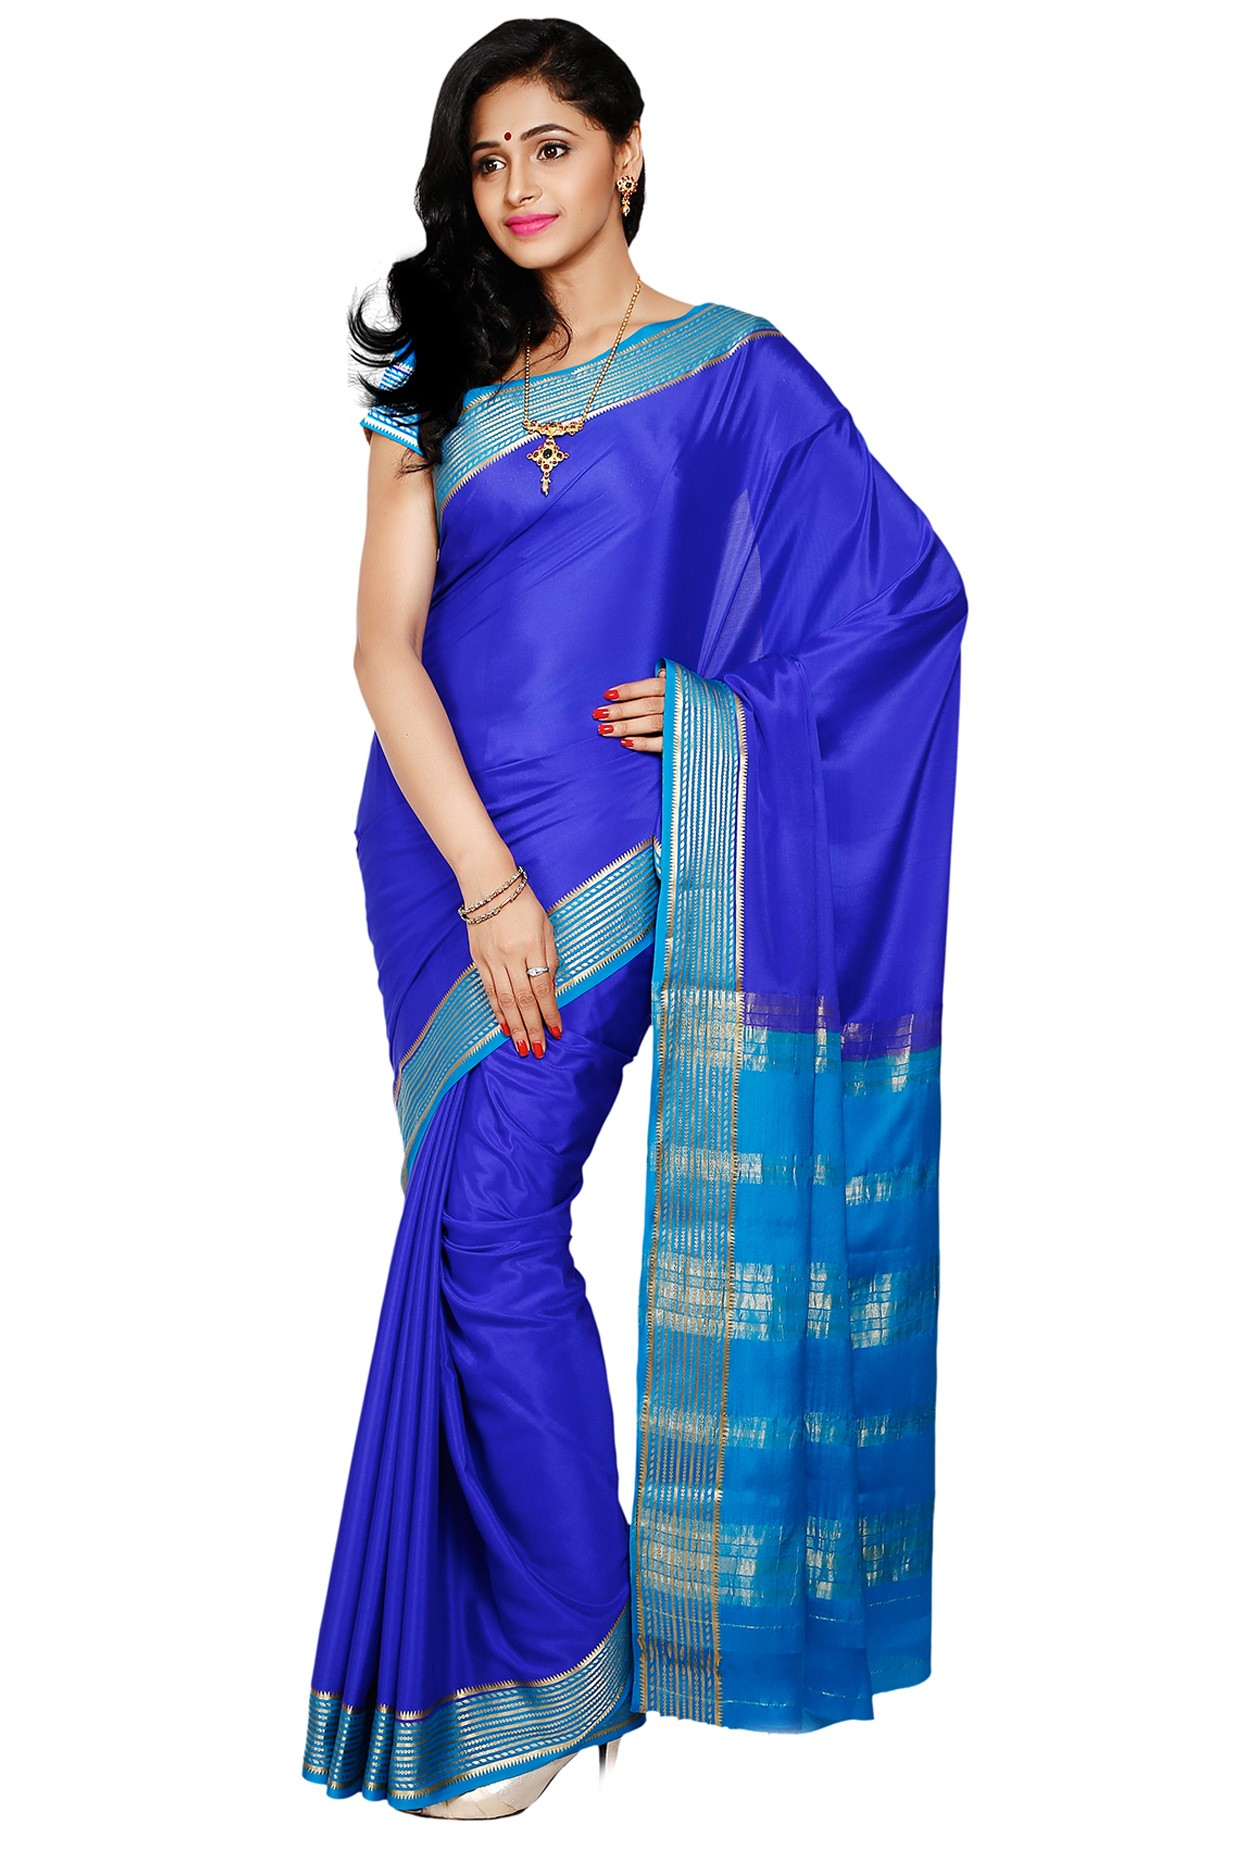 0b03fb2341 100% Pure Crepe Mysore Traditional Silk Saree KC07010_ROYALBLUE_ANANDA - Mysore  Silk Sarees - Sarees